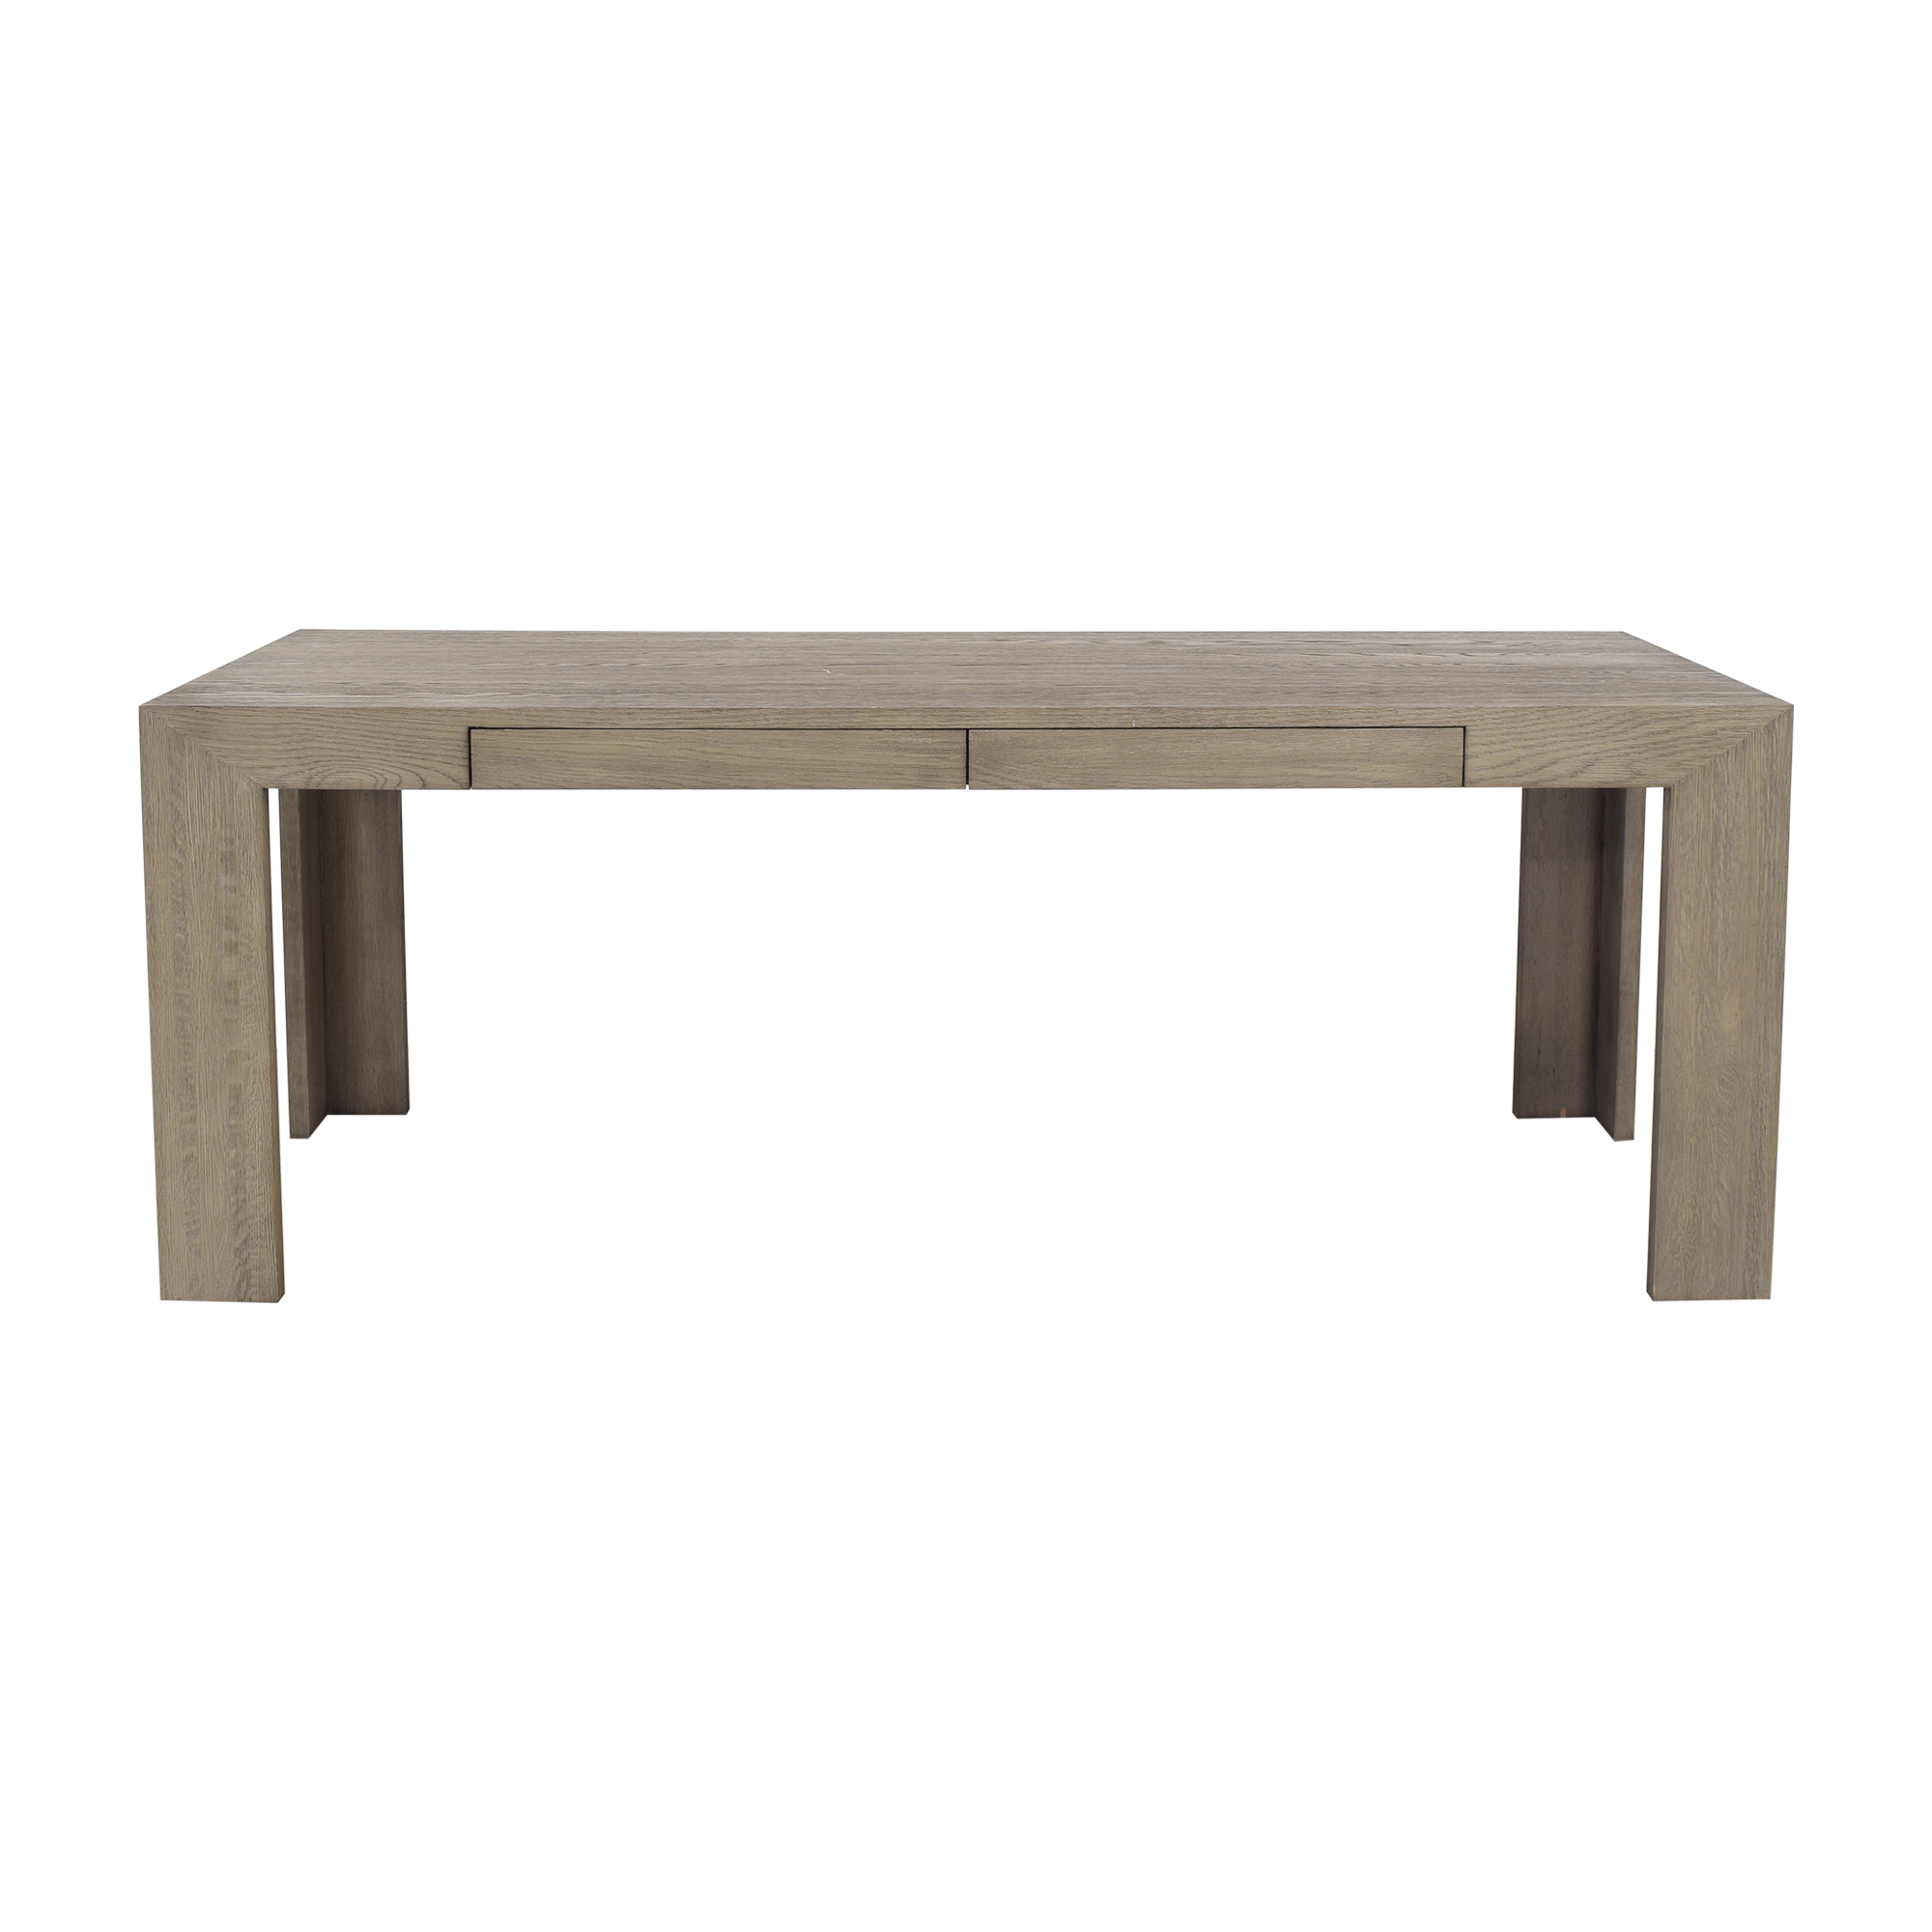 buy Restoration Hardware Restoration Hardware Grey Oak Machinto Desk online